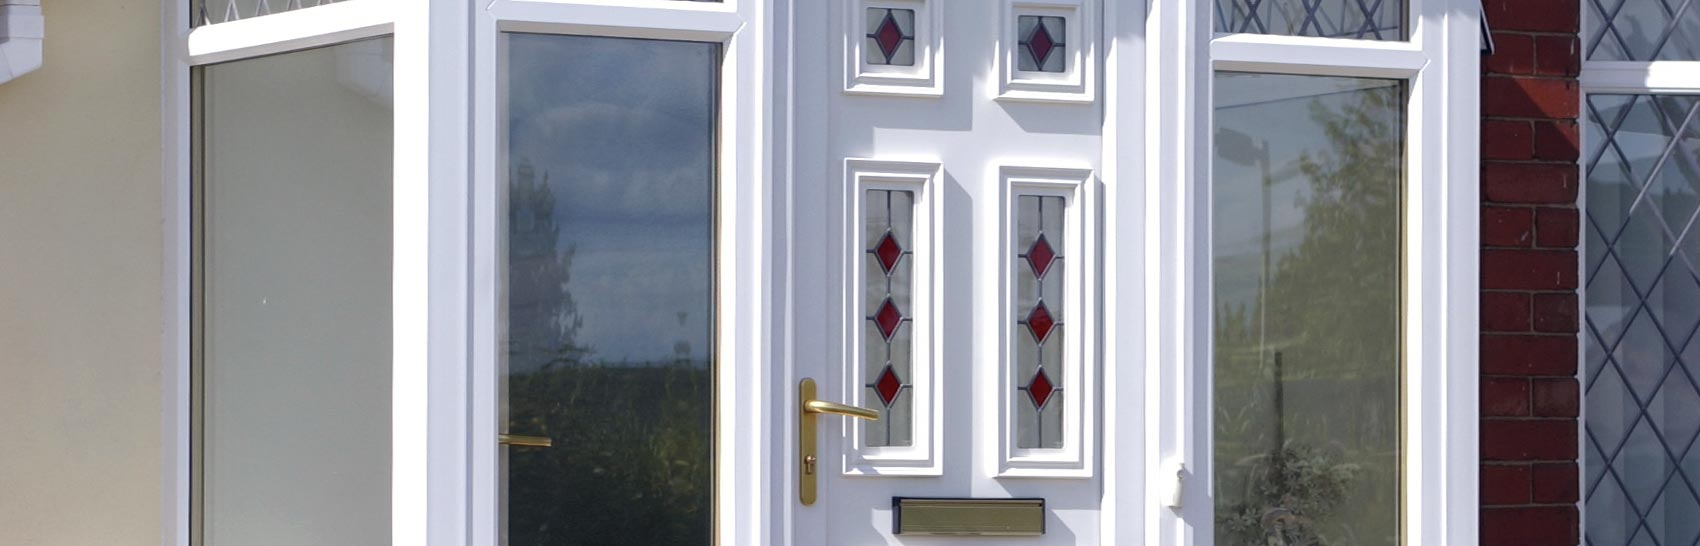 Pvcu front and back doors in bristol associated windows for Upvc french doors bristol